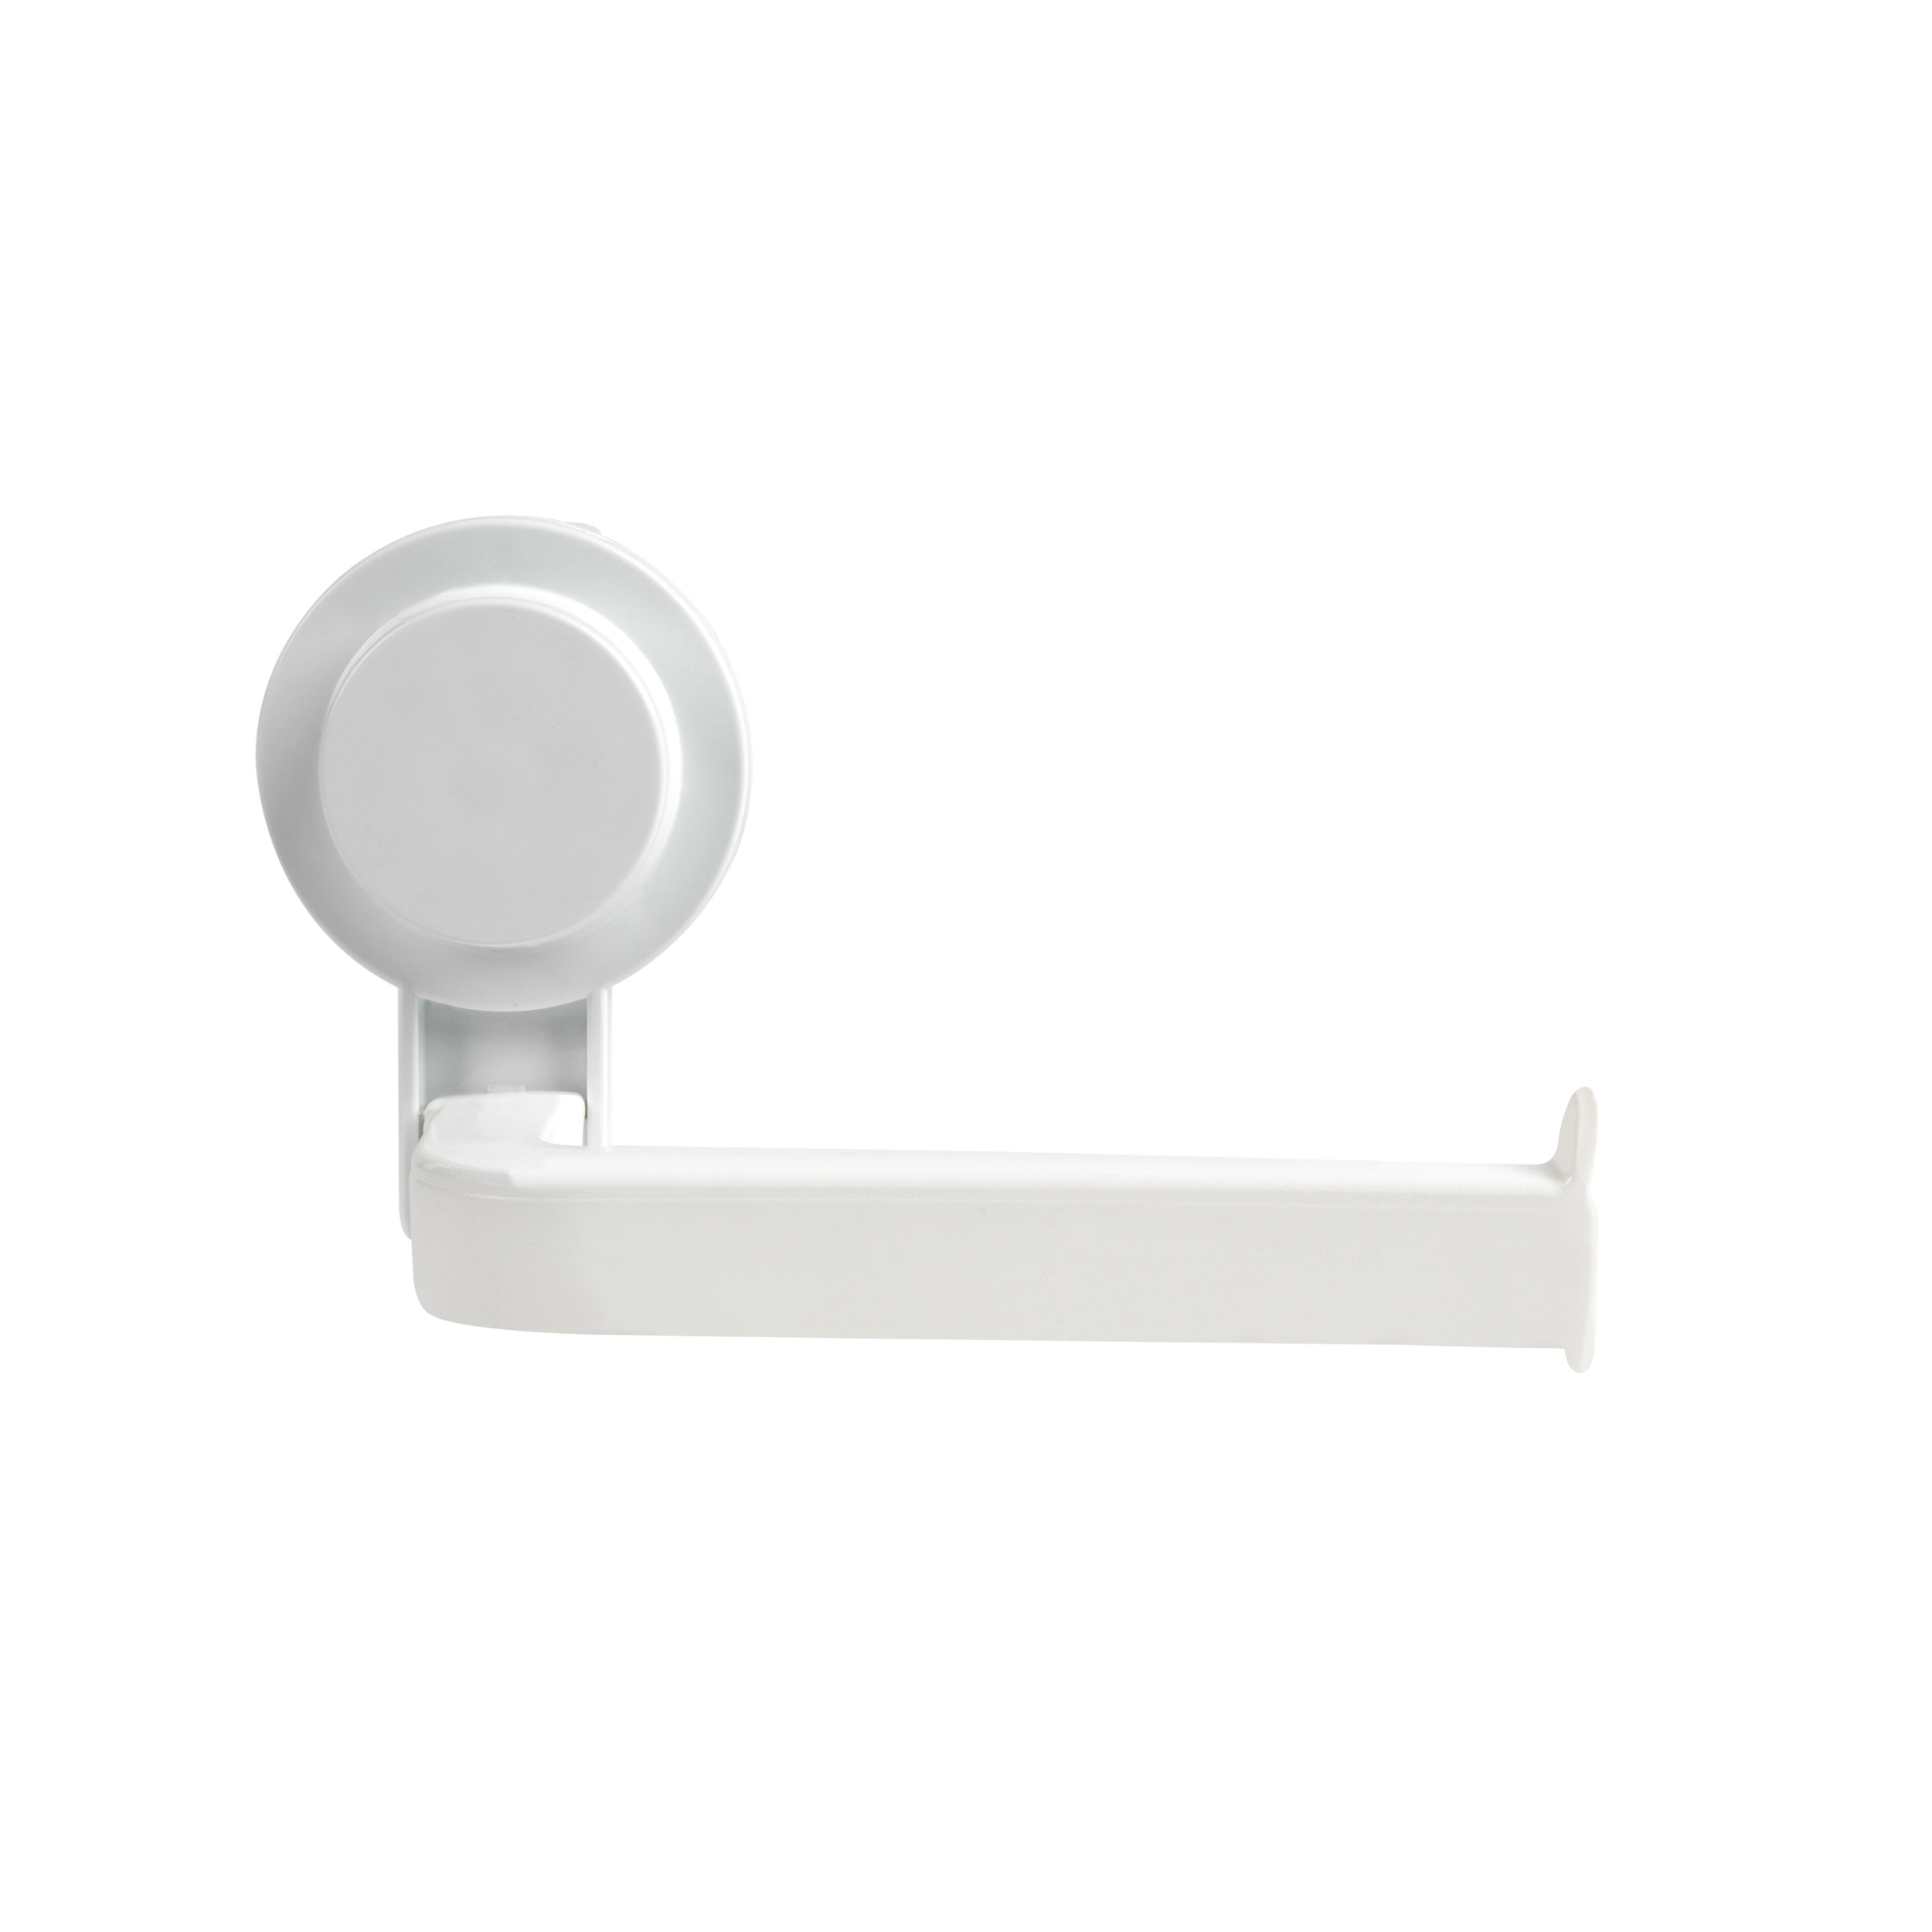 Plastic Toilet Roll Holder Beldray Suction Toilet Roll Holder Abs Plastic White